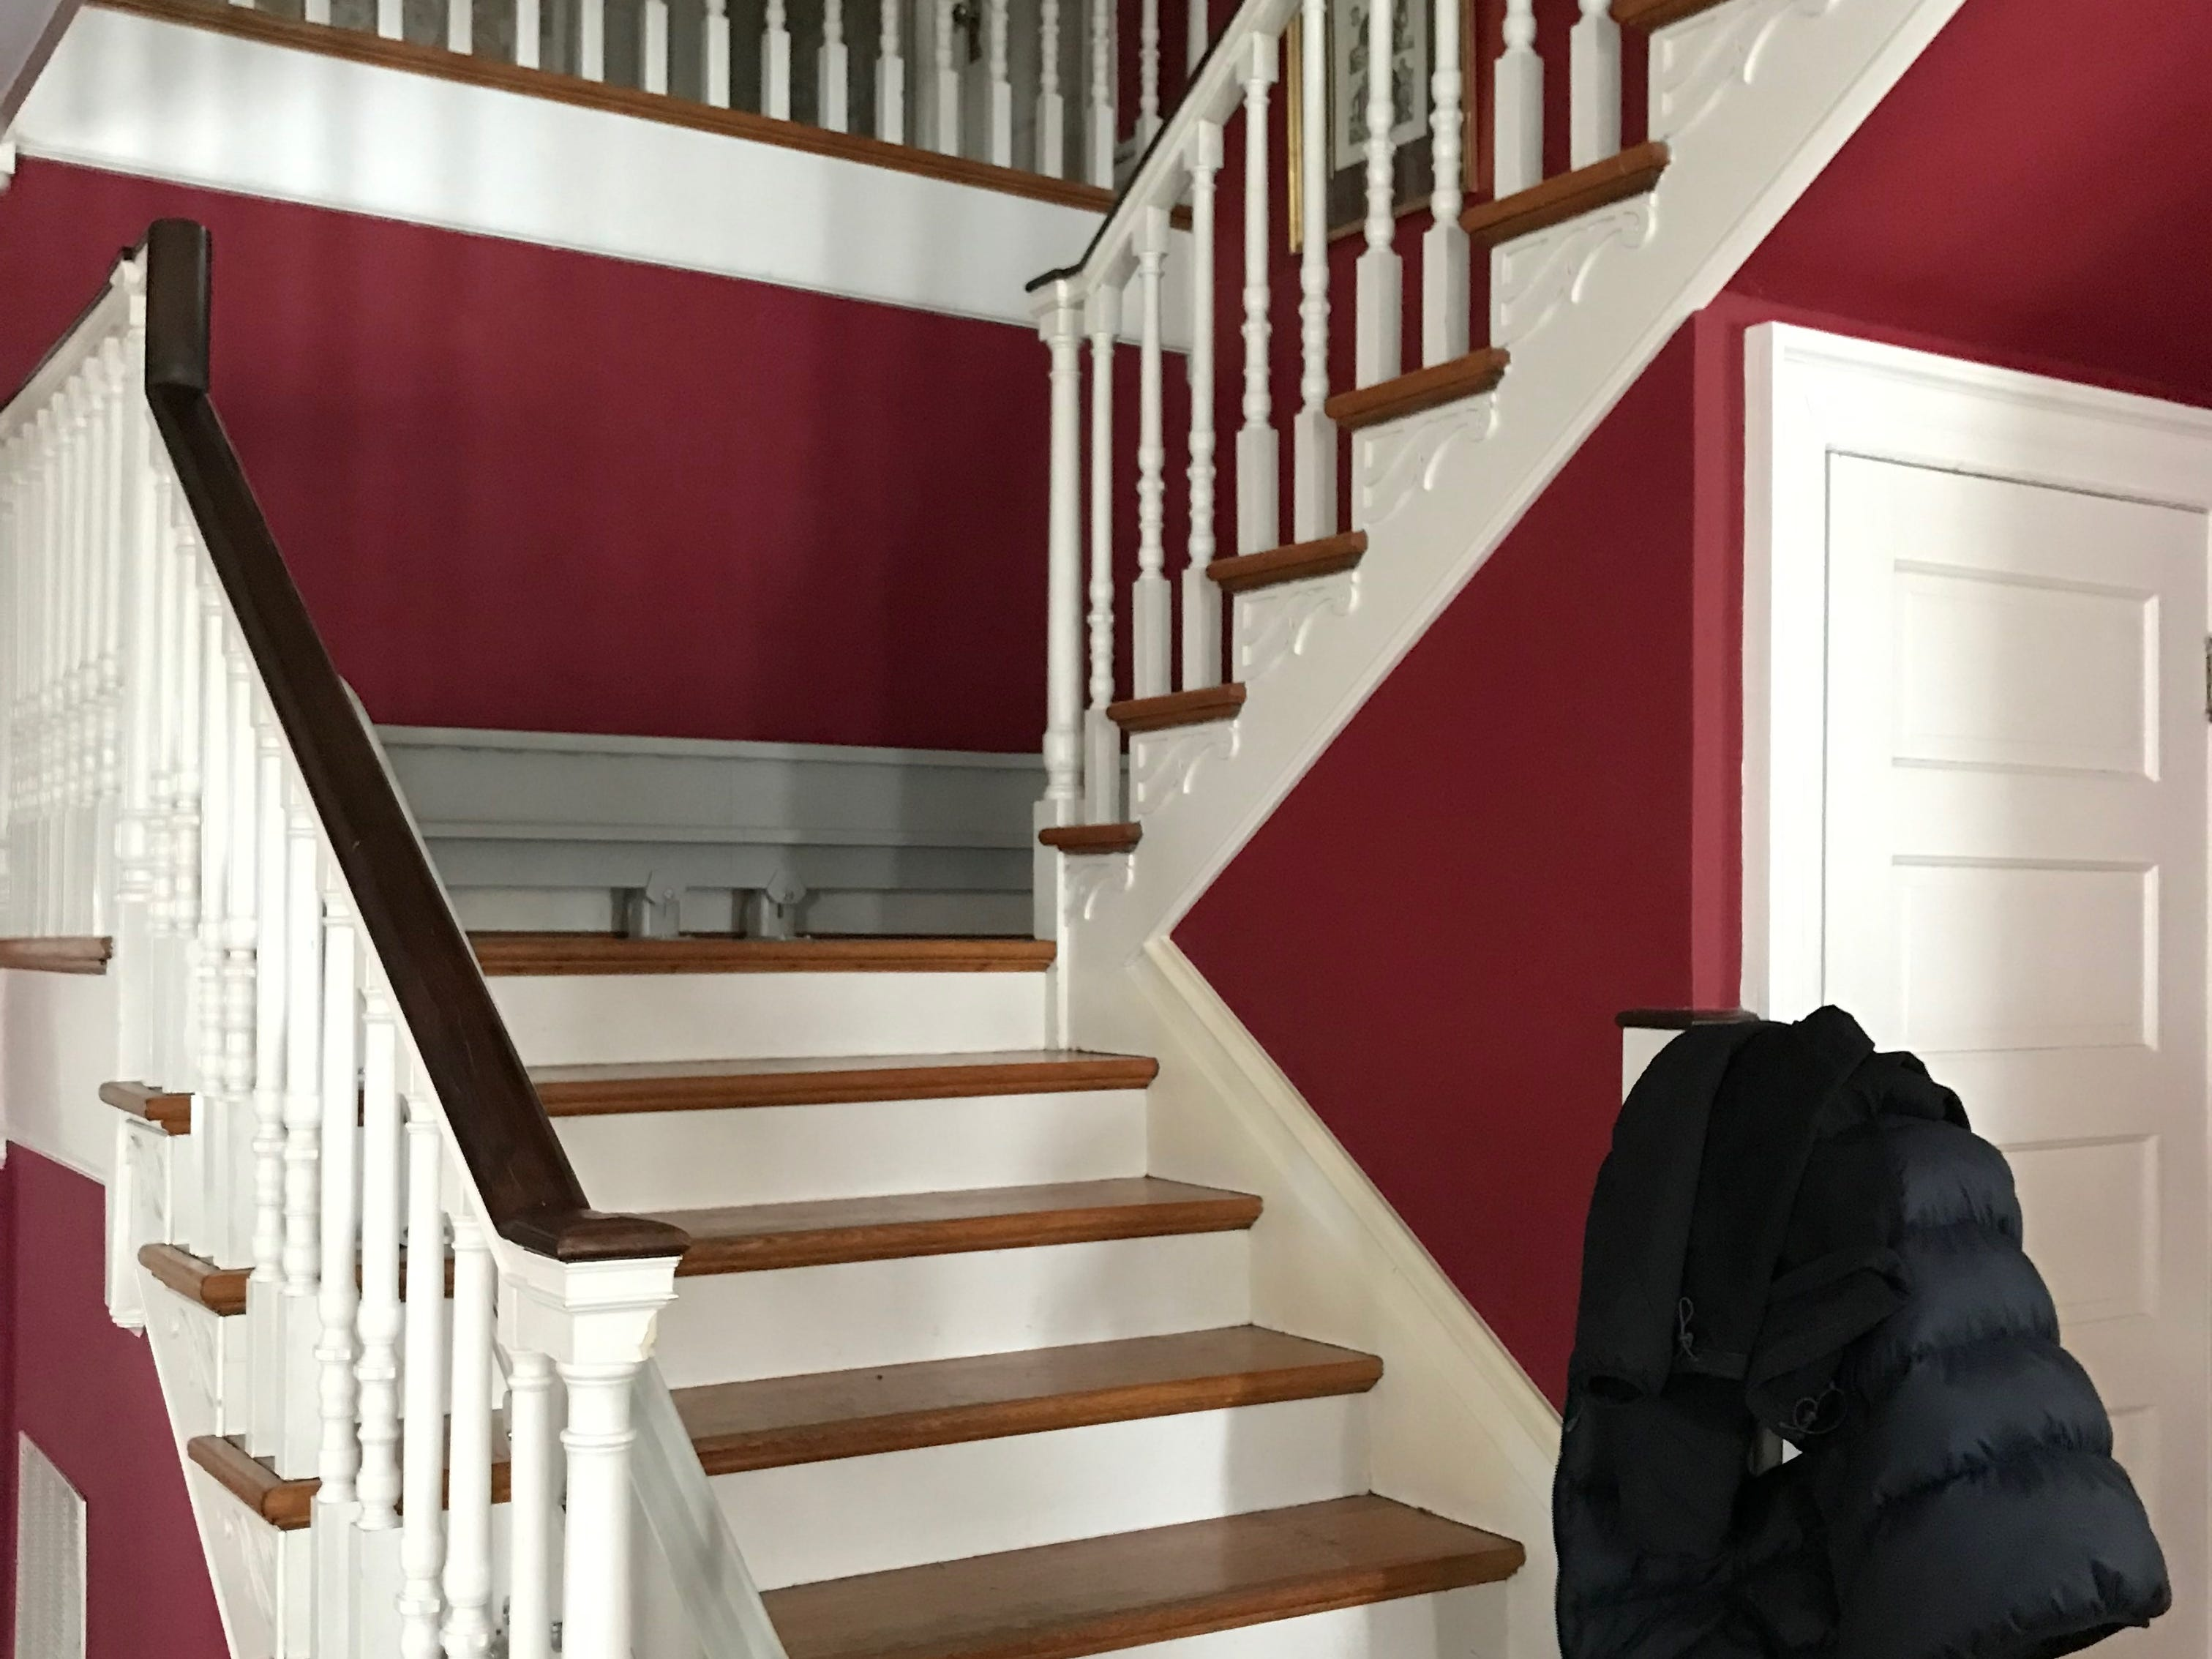 The stairs in Dr. Robert Kyler's home in Staunton. Initially he tried to use a stair lift which costs $15,000, but it was not safe enough for him to use independently so he moved his bedroom and main bathroom to the ground floor. Photographed on Friday, March 8, 2019.